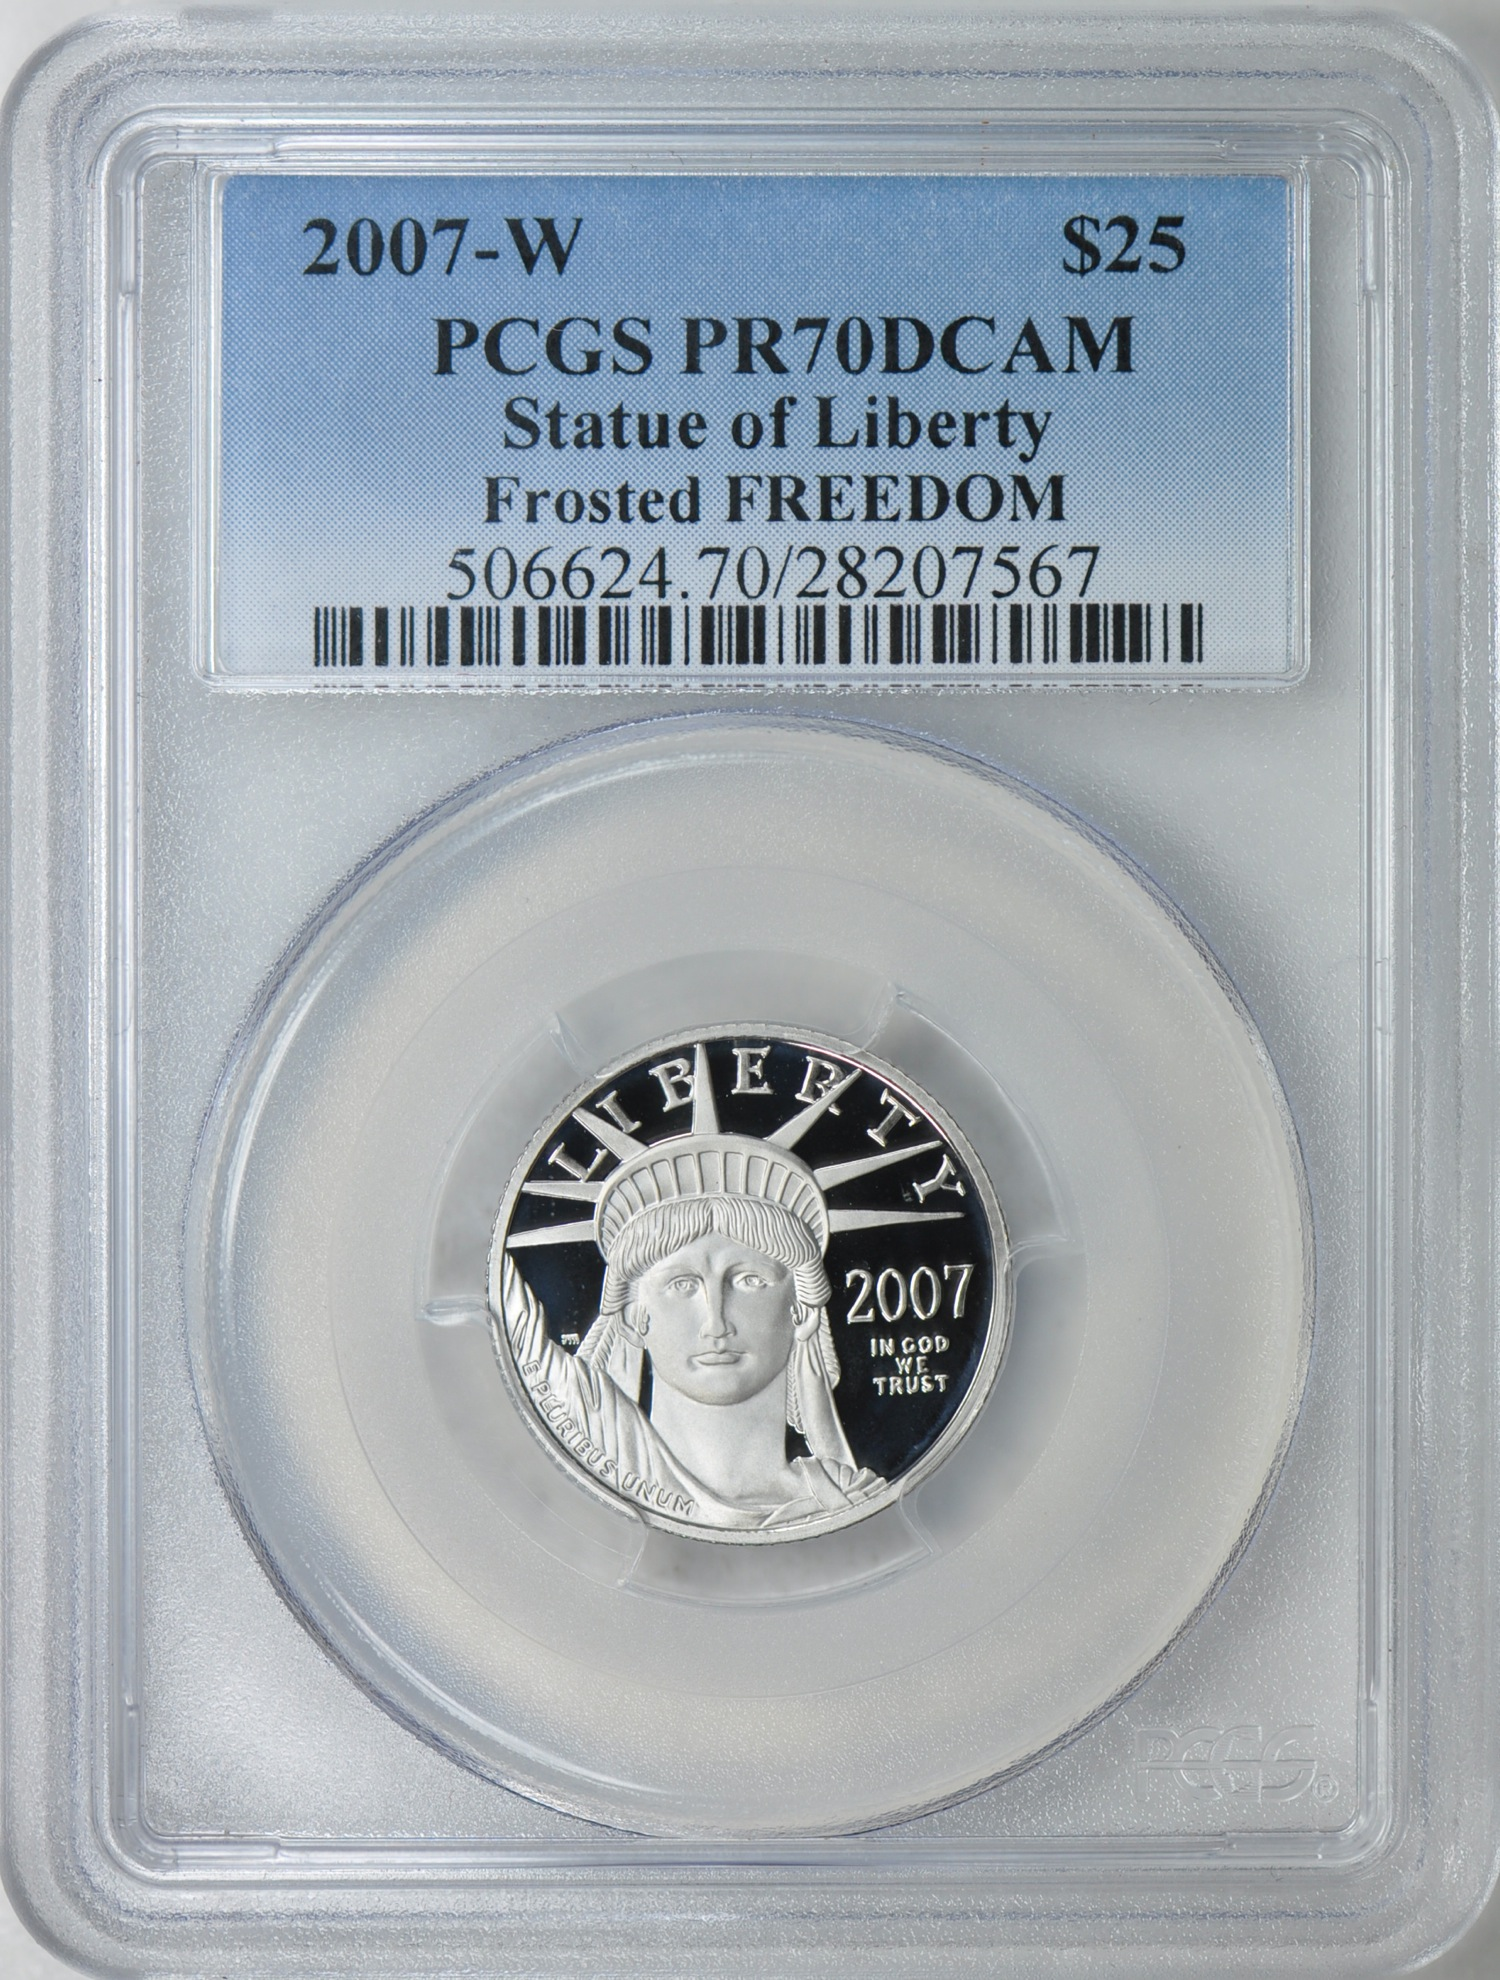 Rare 2007 $25 Platinum Eagle Frosted Freedom Variety Draws 52 Bids